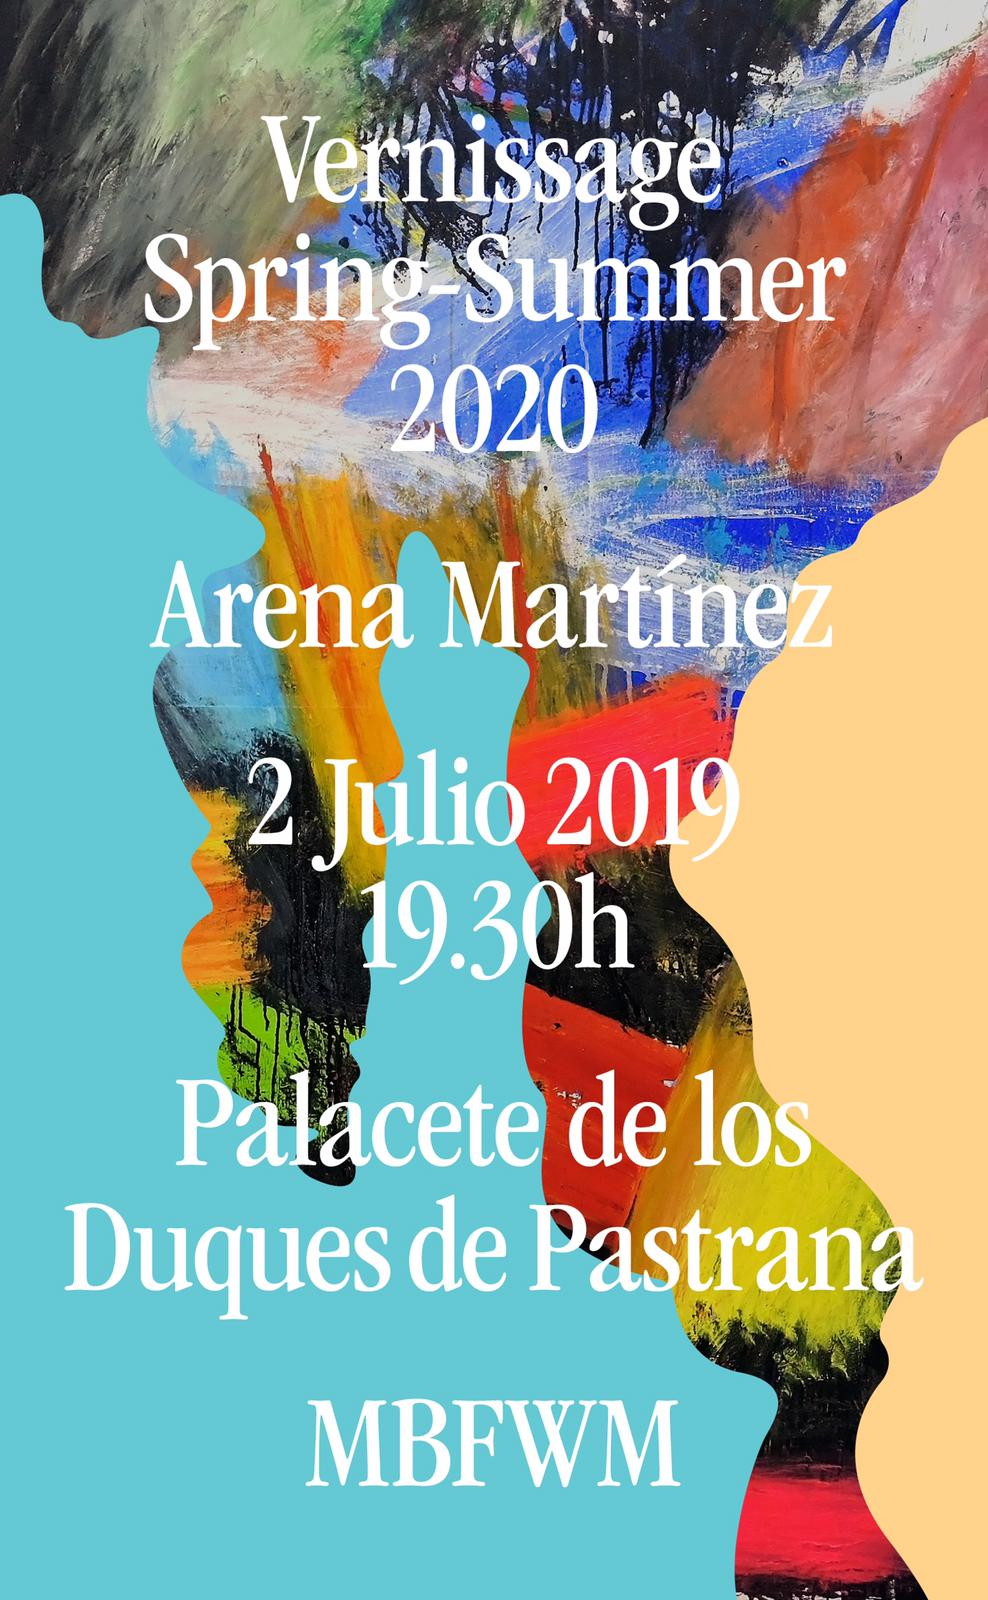 Contemporary art and fashion online store in Madrid - Spain - Arena Martínez - MBFWM - 2020